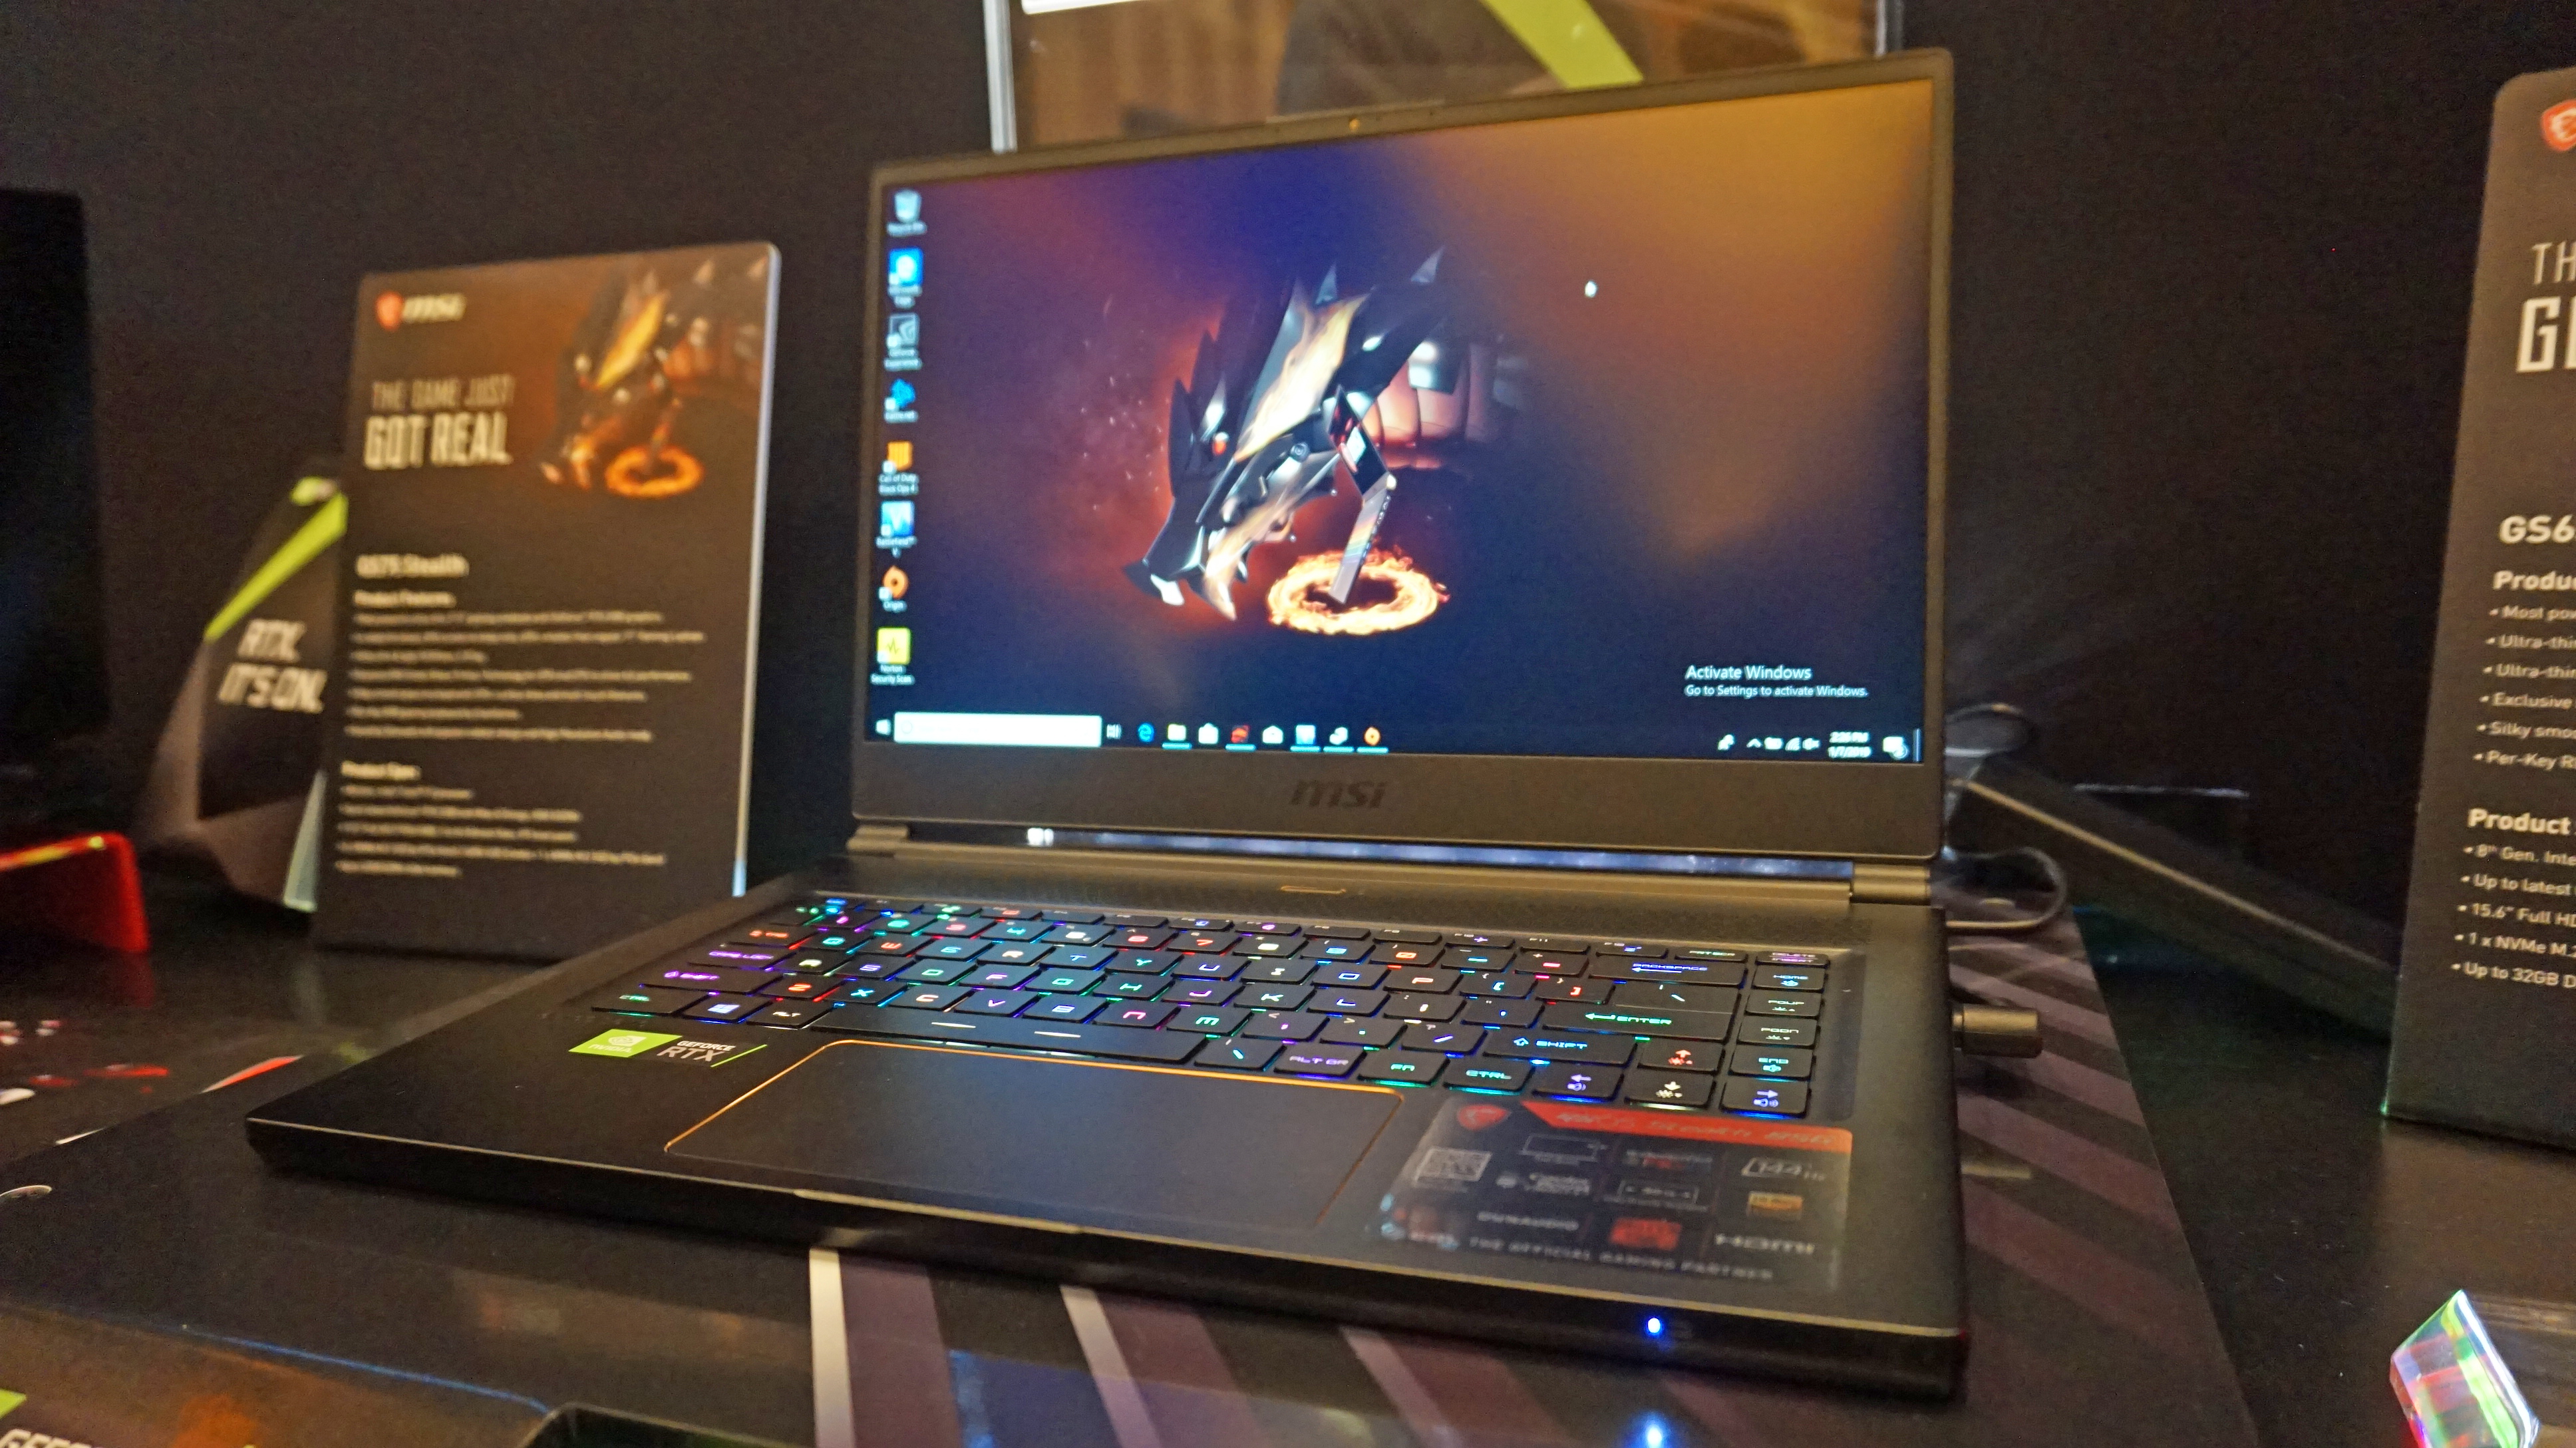 Jan 9 CES 2019: MSI s ultra thin GS65 Stealth laptop gets an RTX